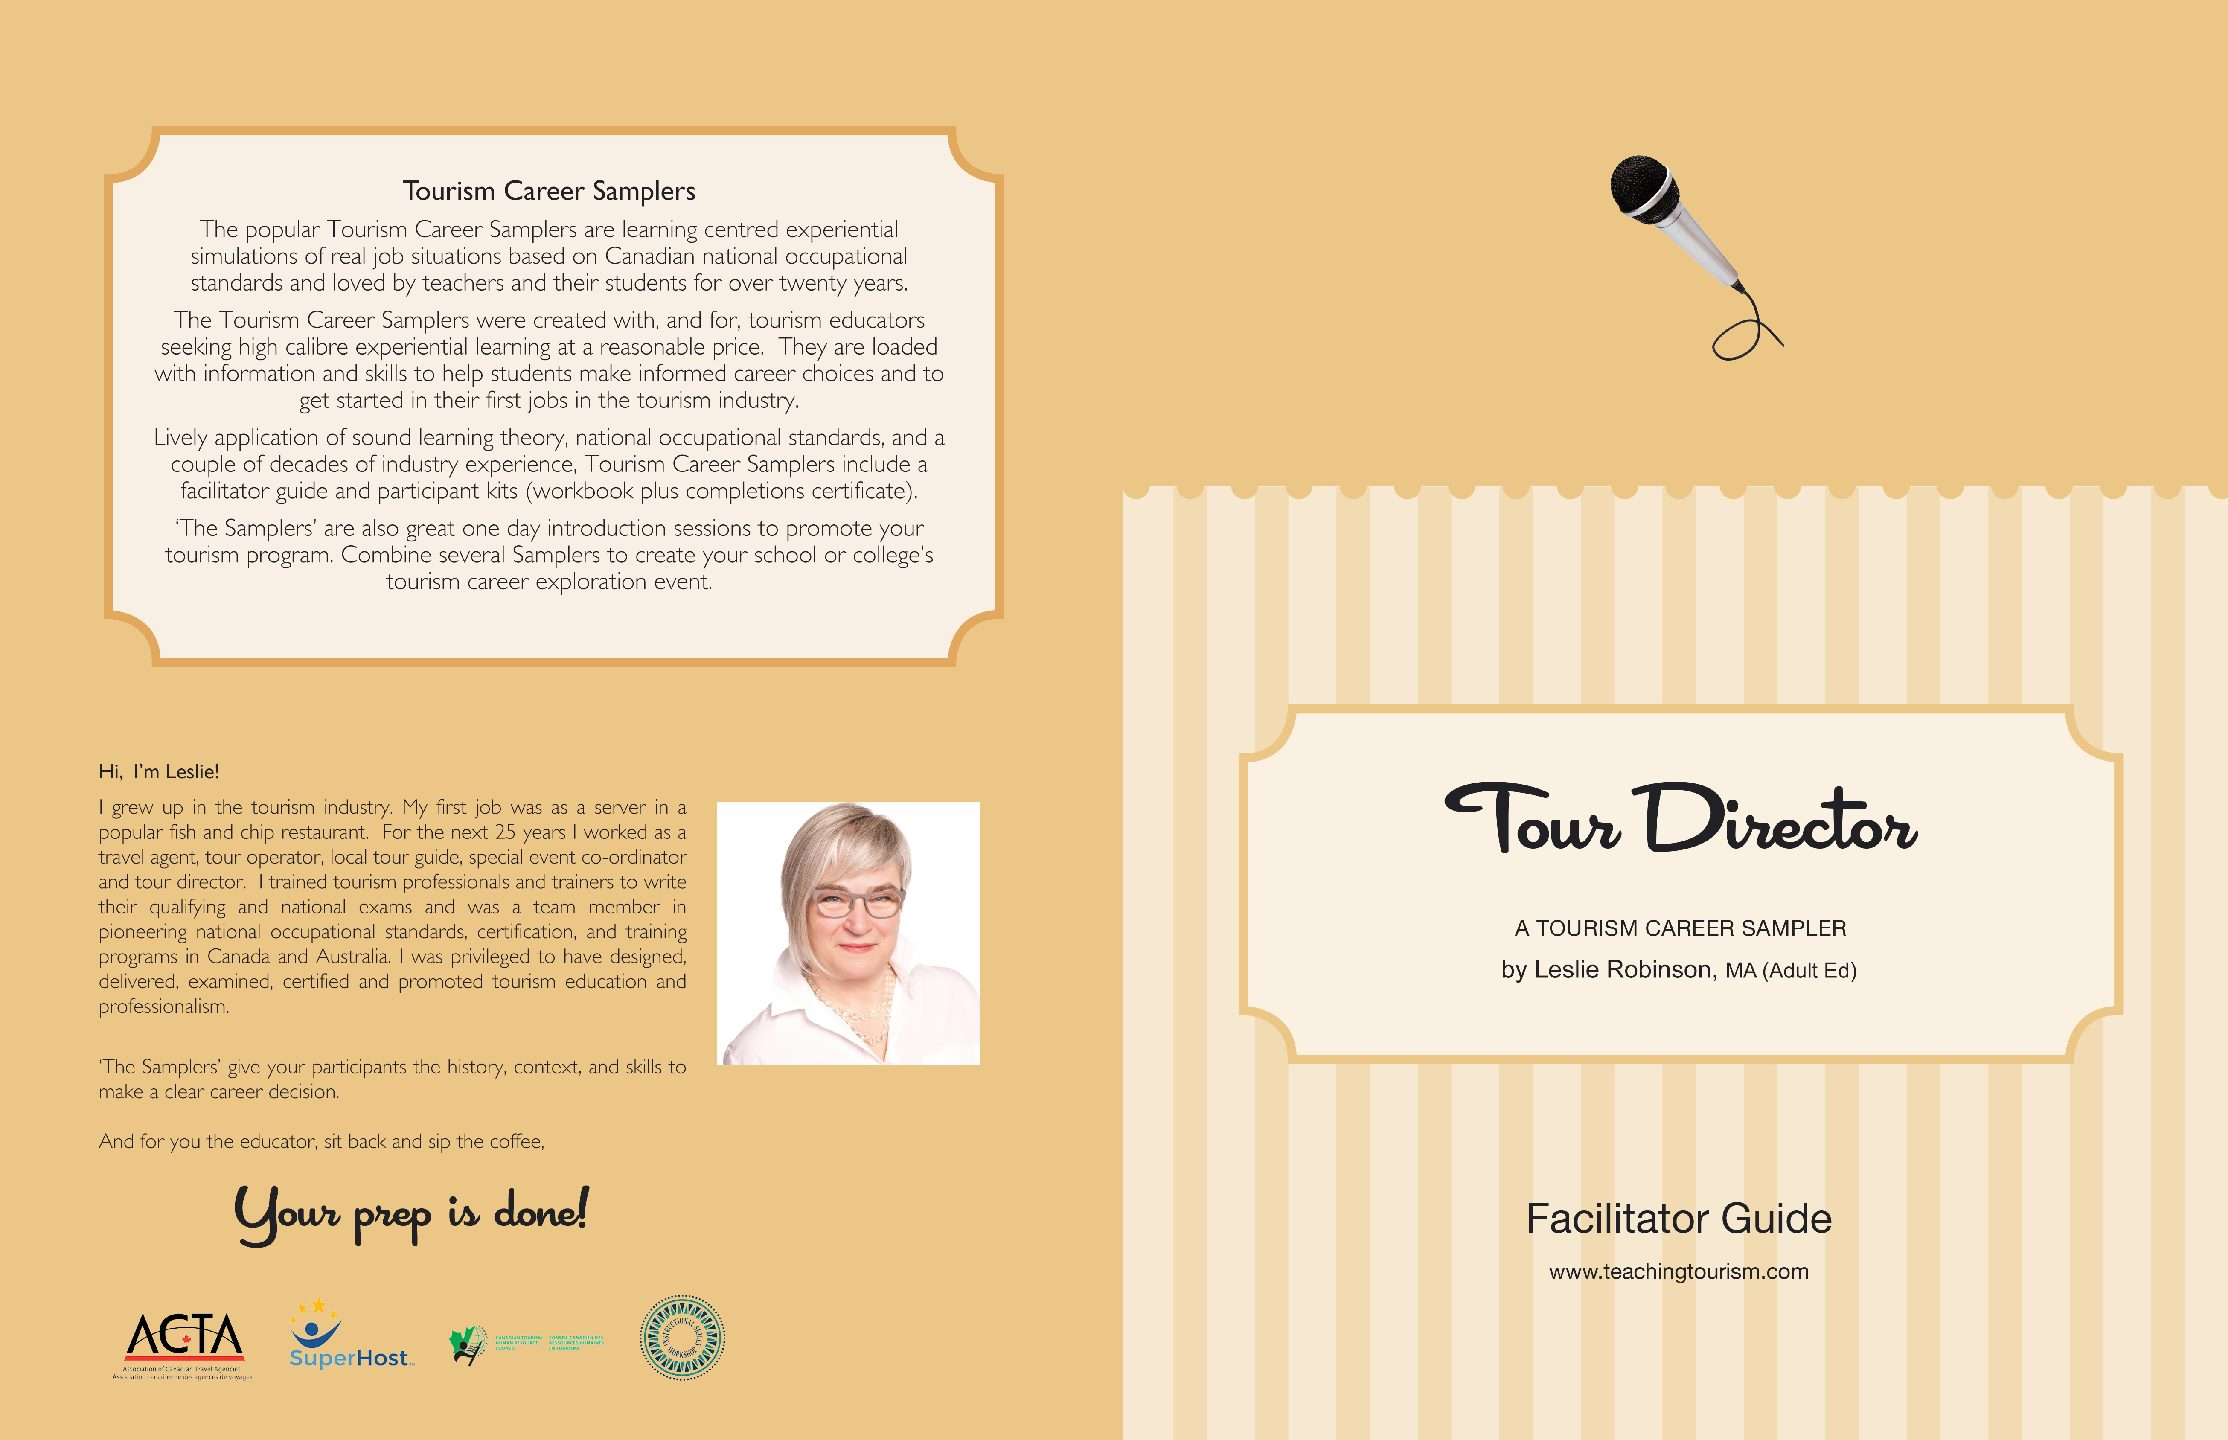 Tour Director Facilitator Guide and Workbook